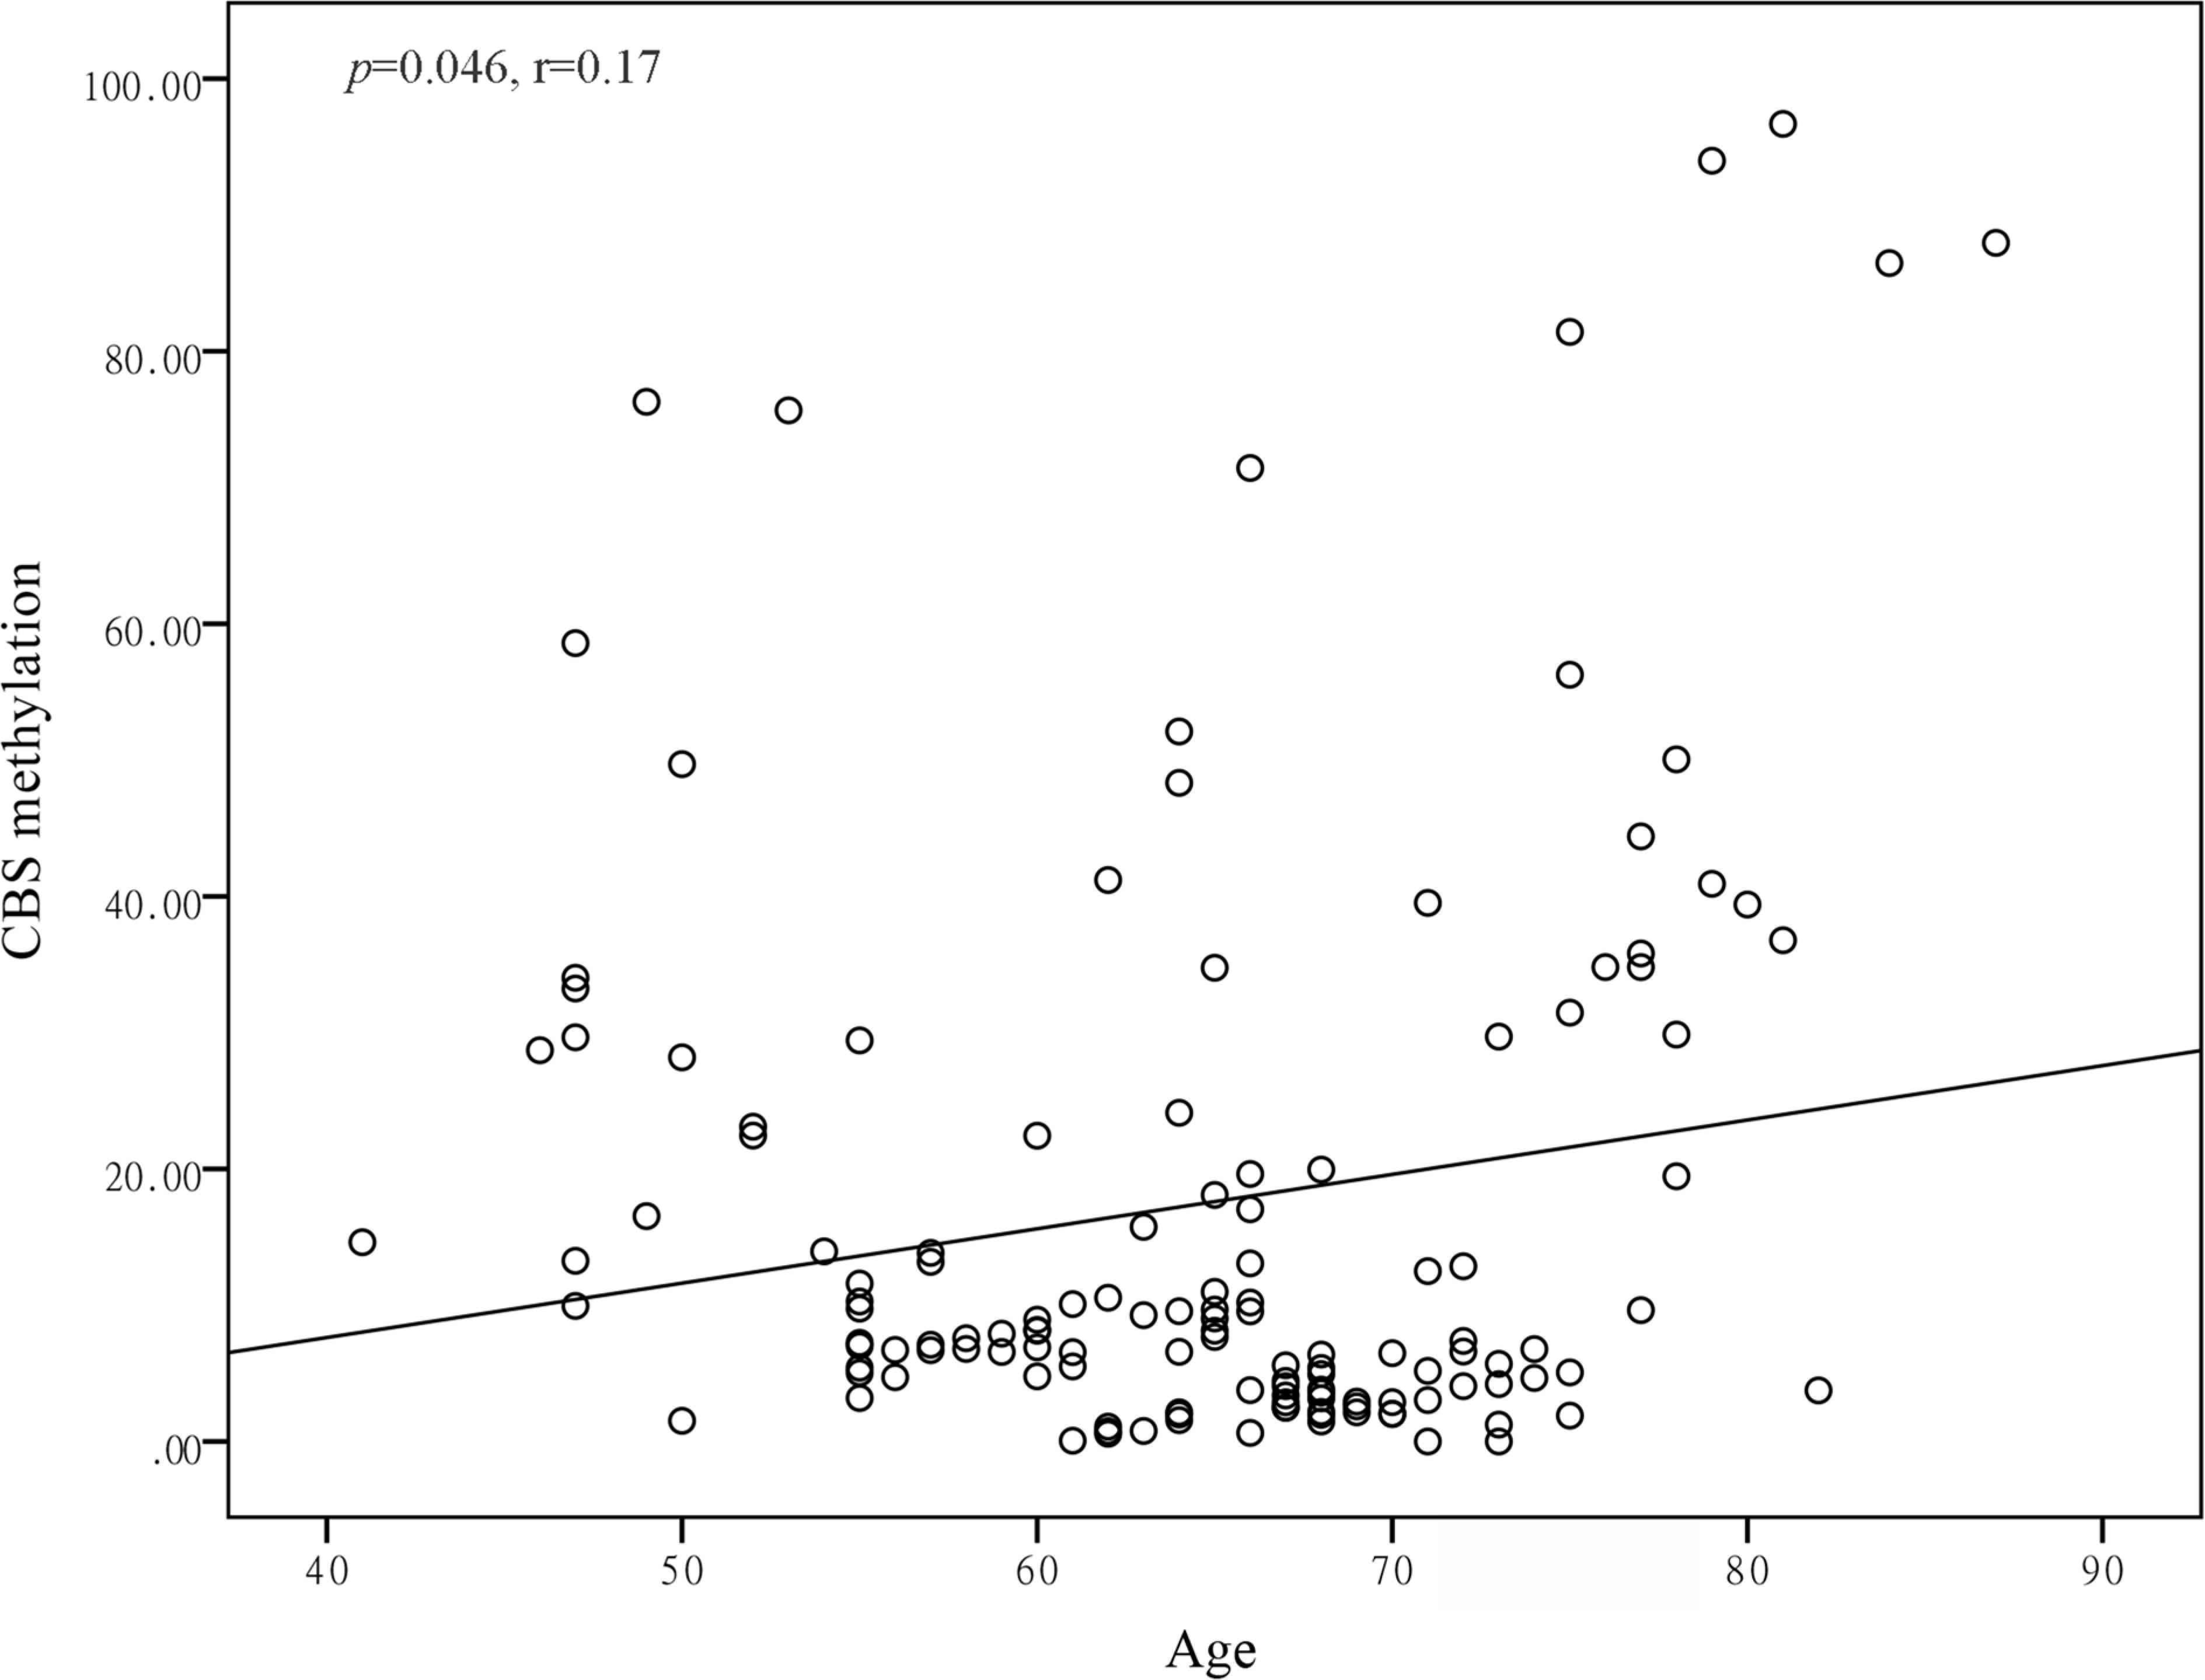 Pearson correlation between age and CBS methylation in male healthy controls.